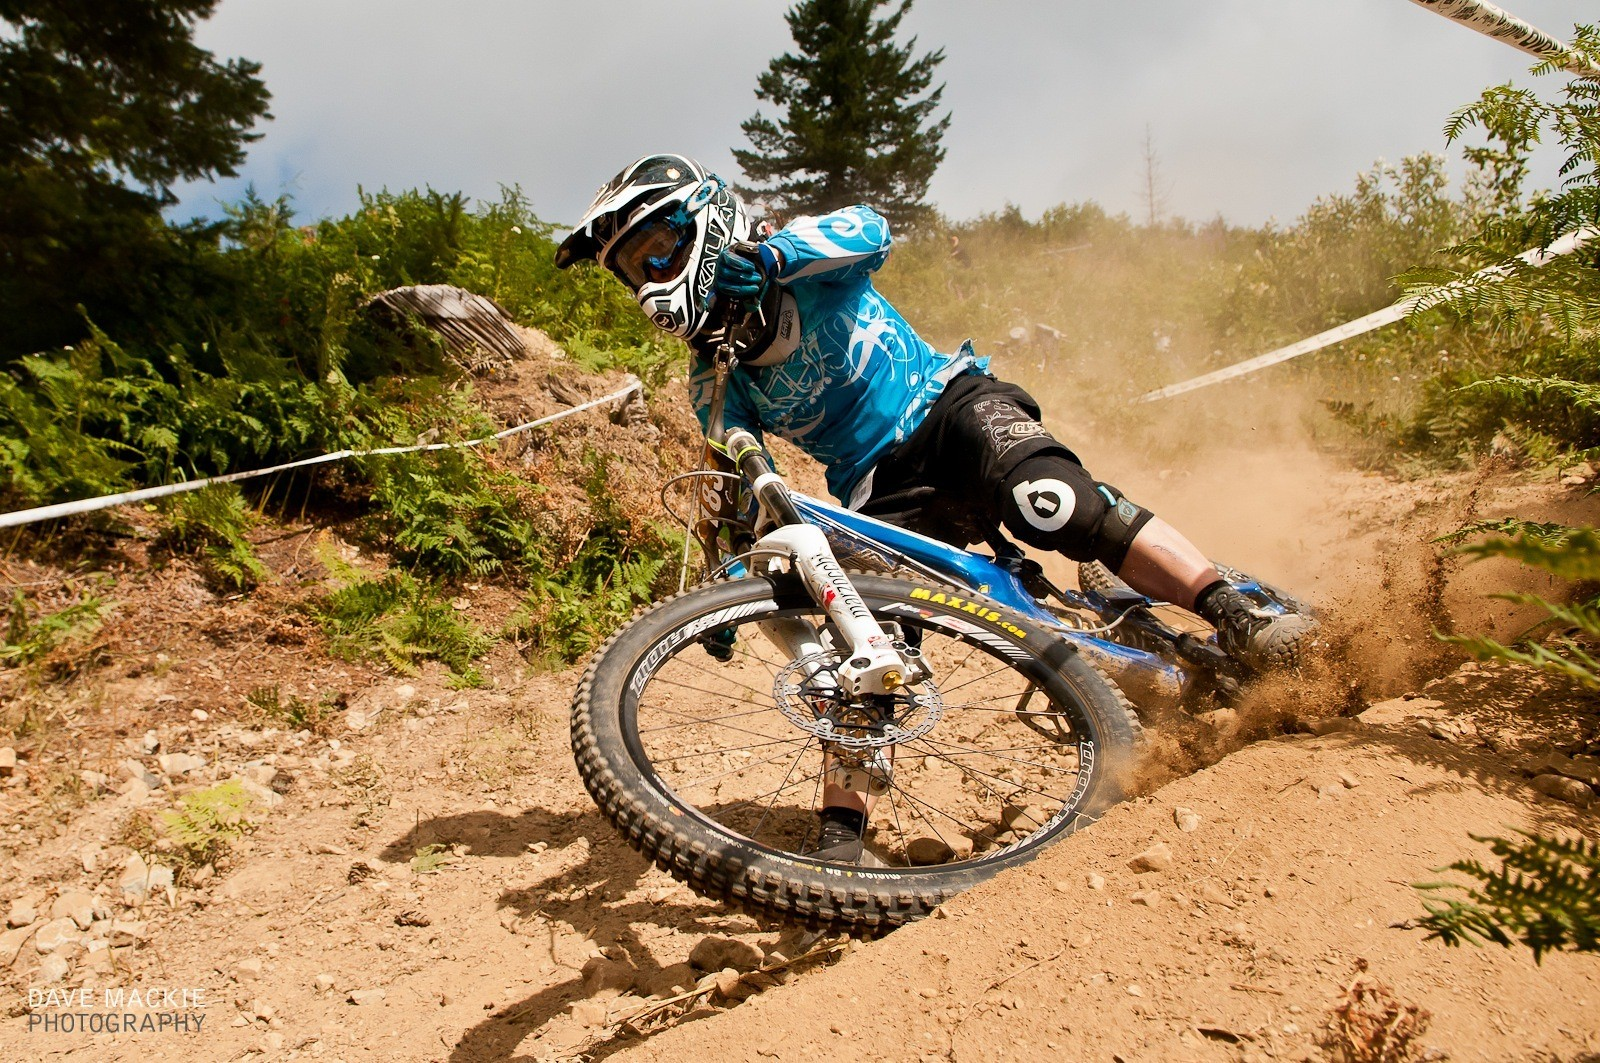 Dirty Jane 5 - sparkplug - Mountain Biking Pictures - Vital MTB